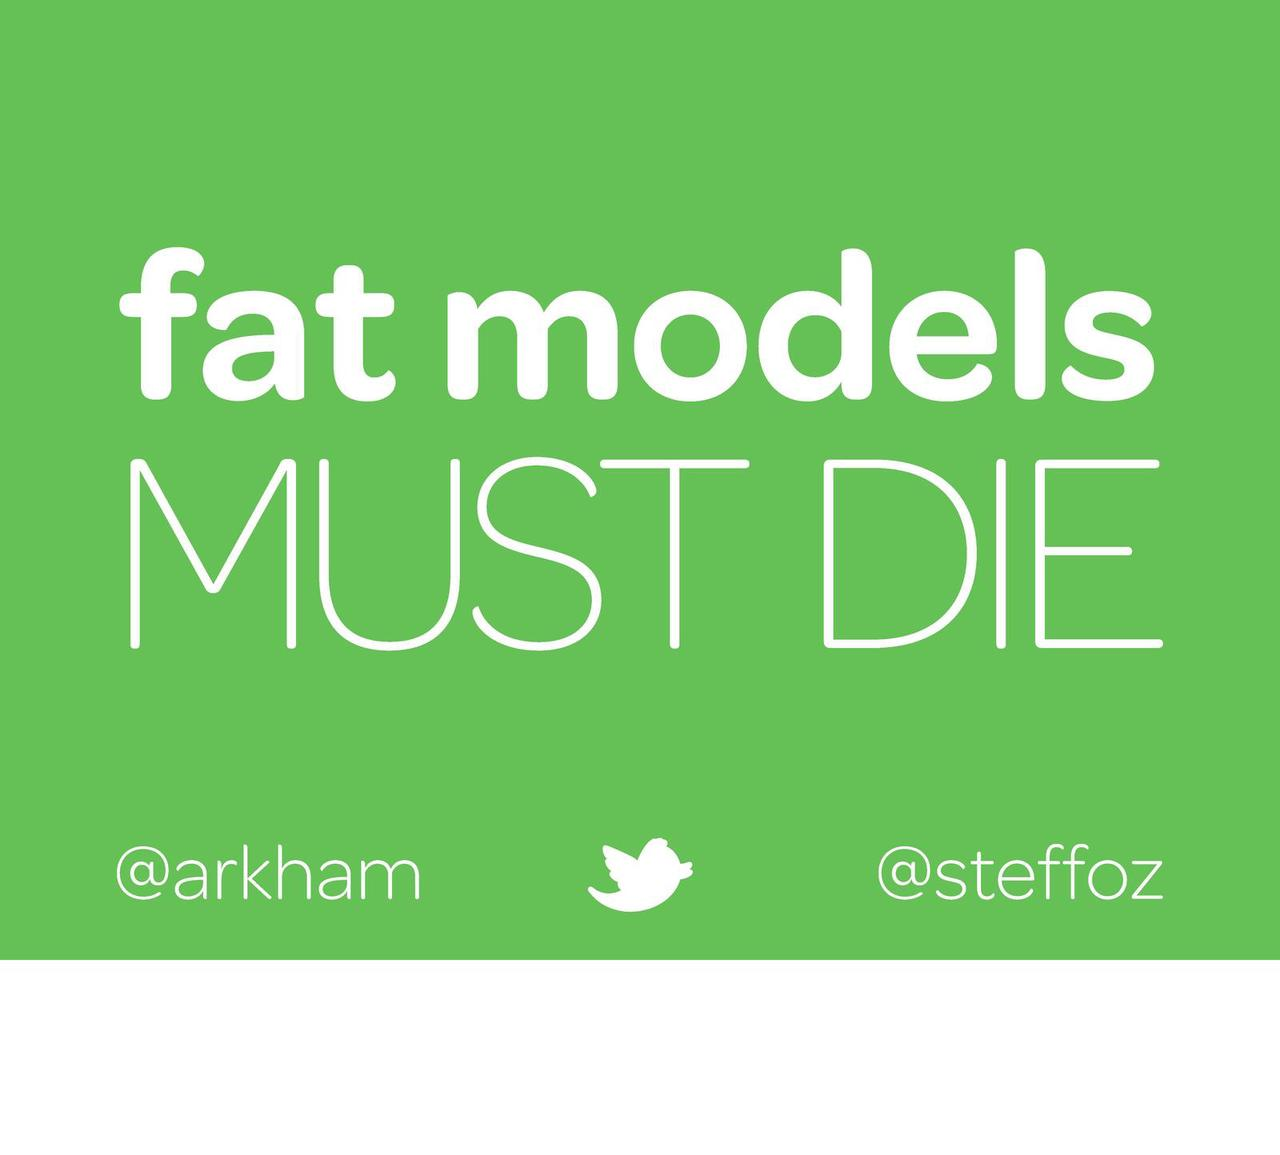 Fat models must die